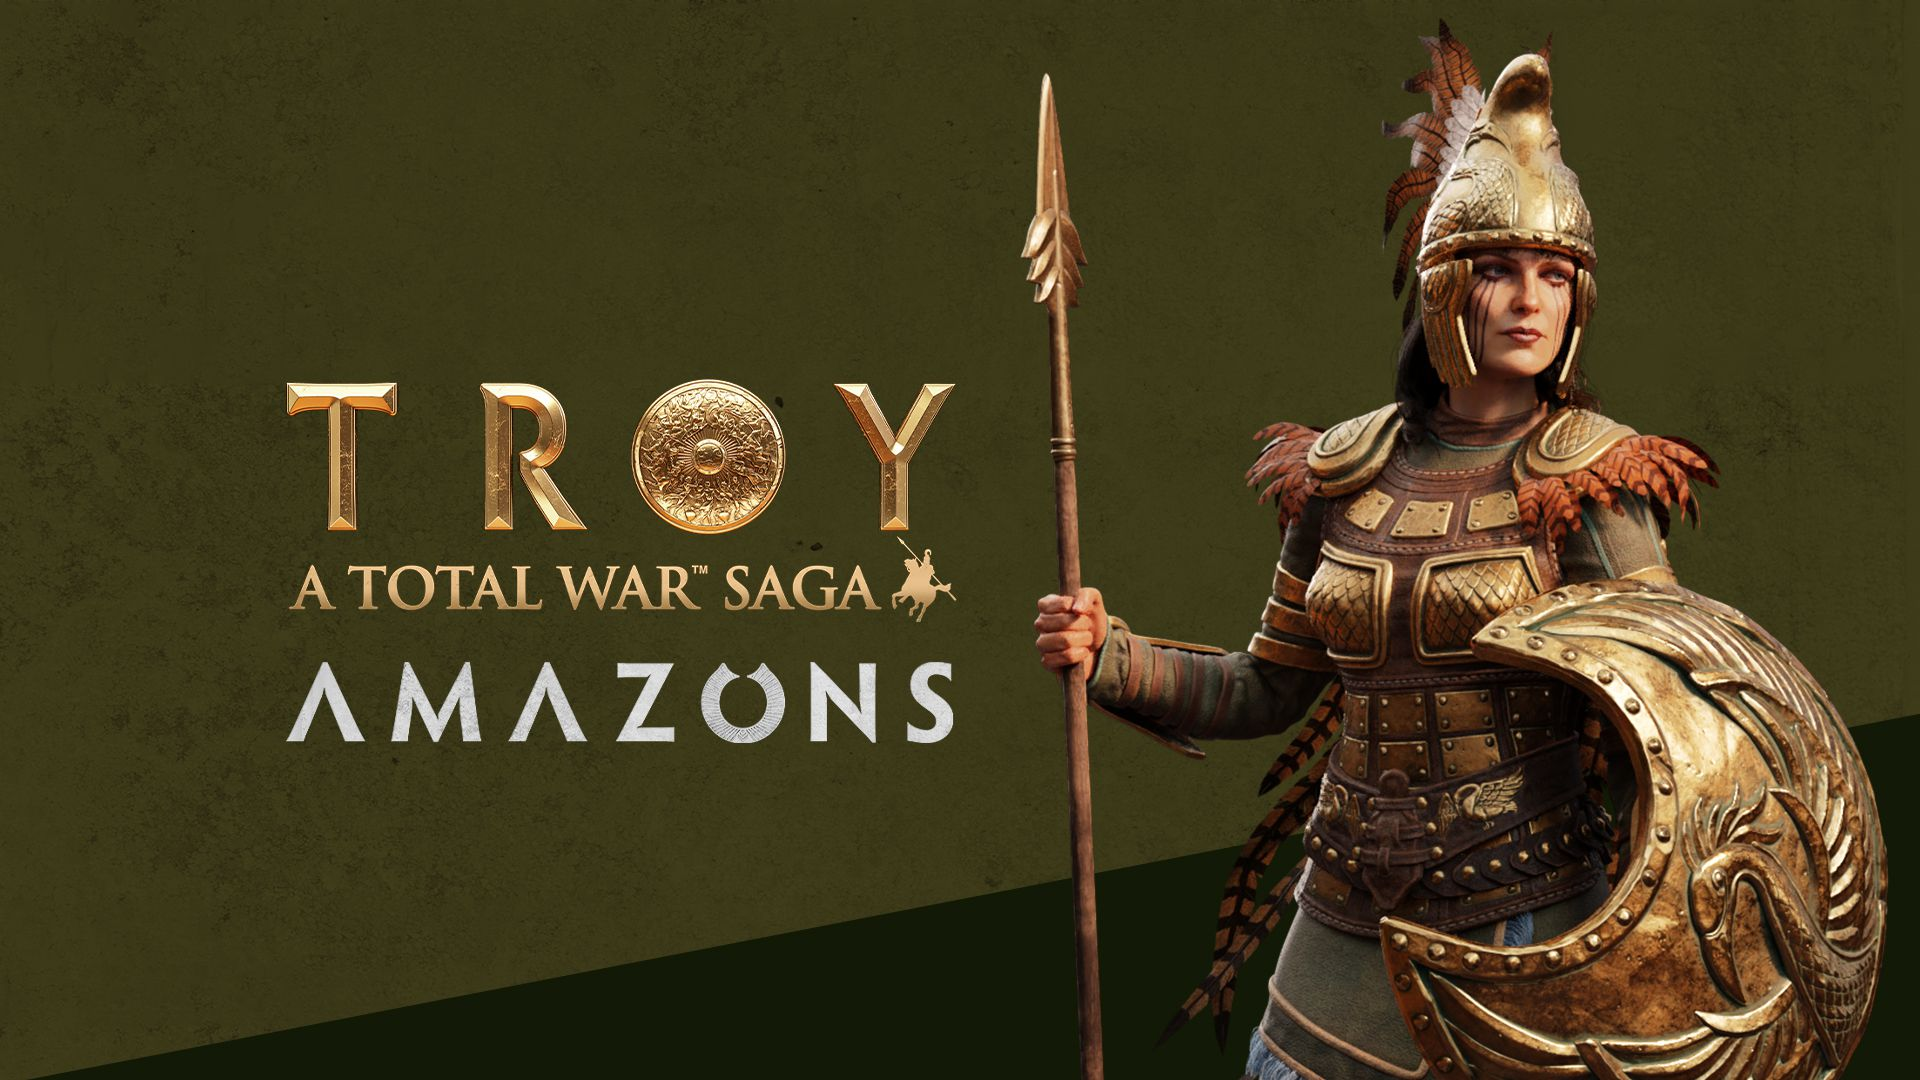 Details of the war Saga troy - amazons - genacion xbox